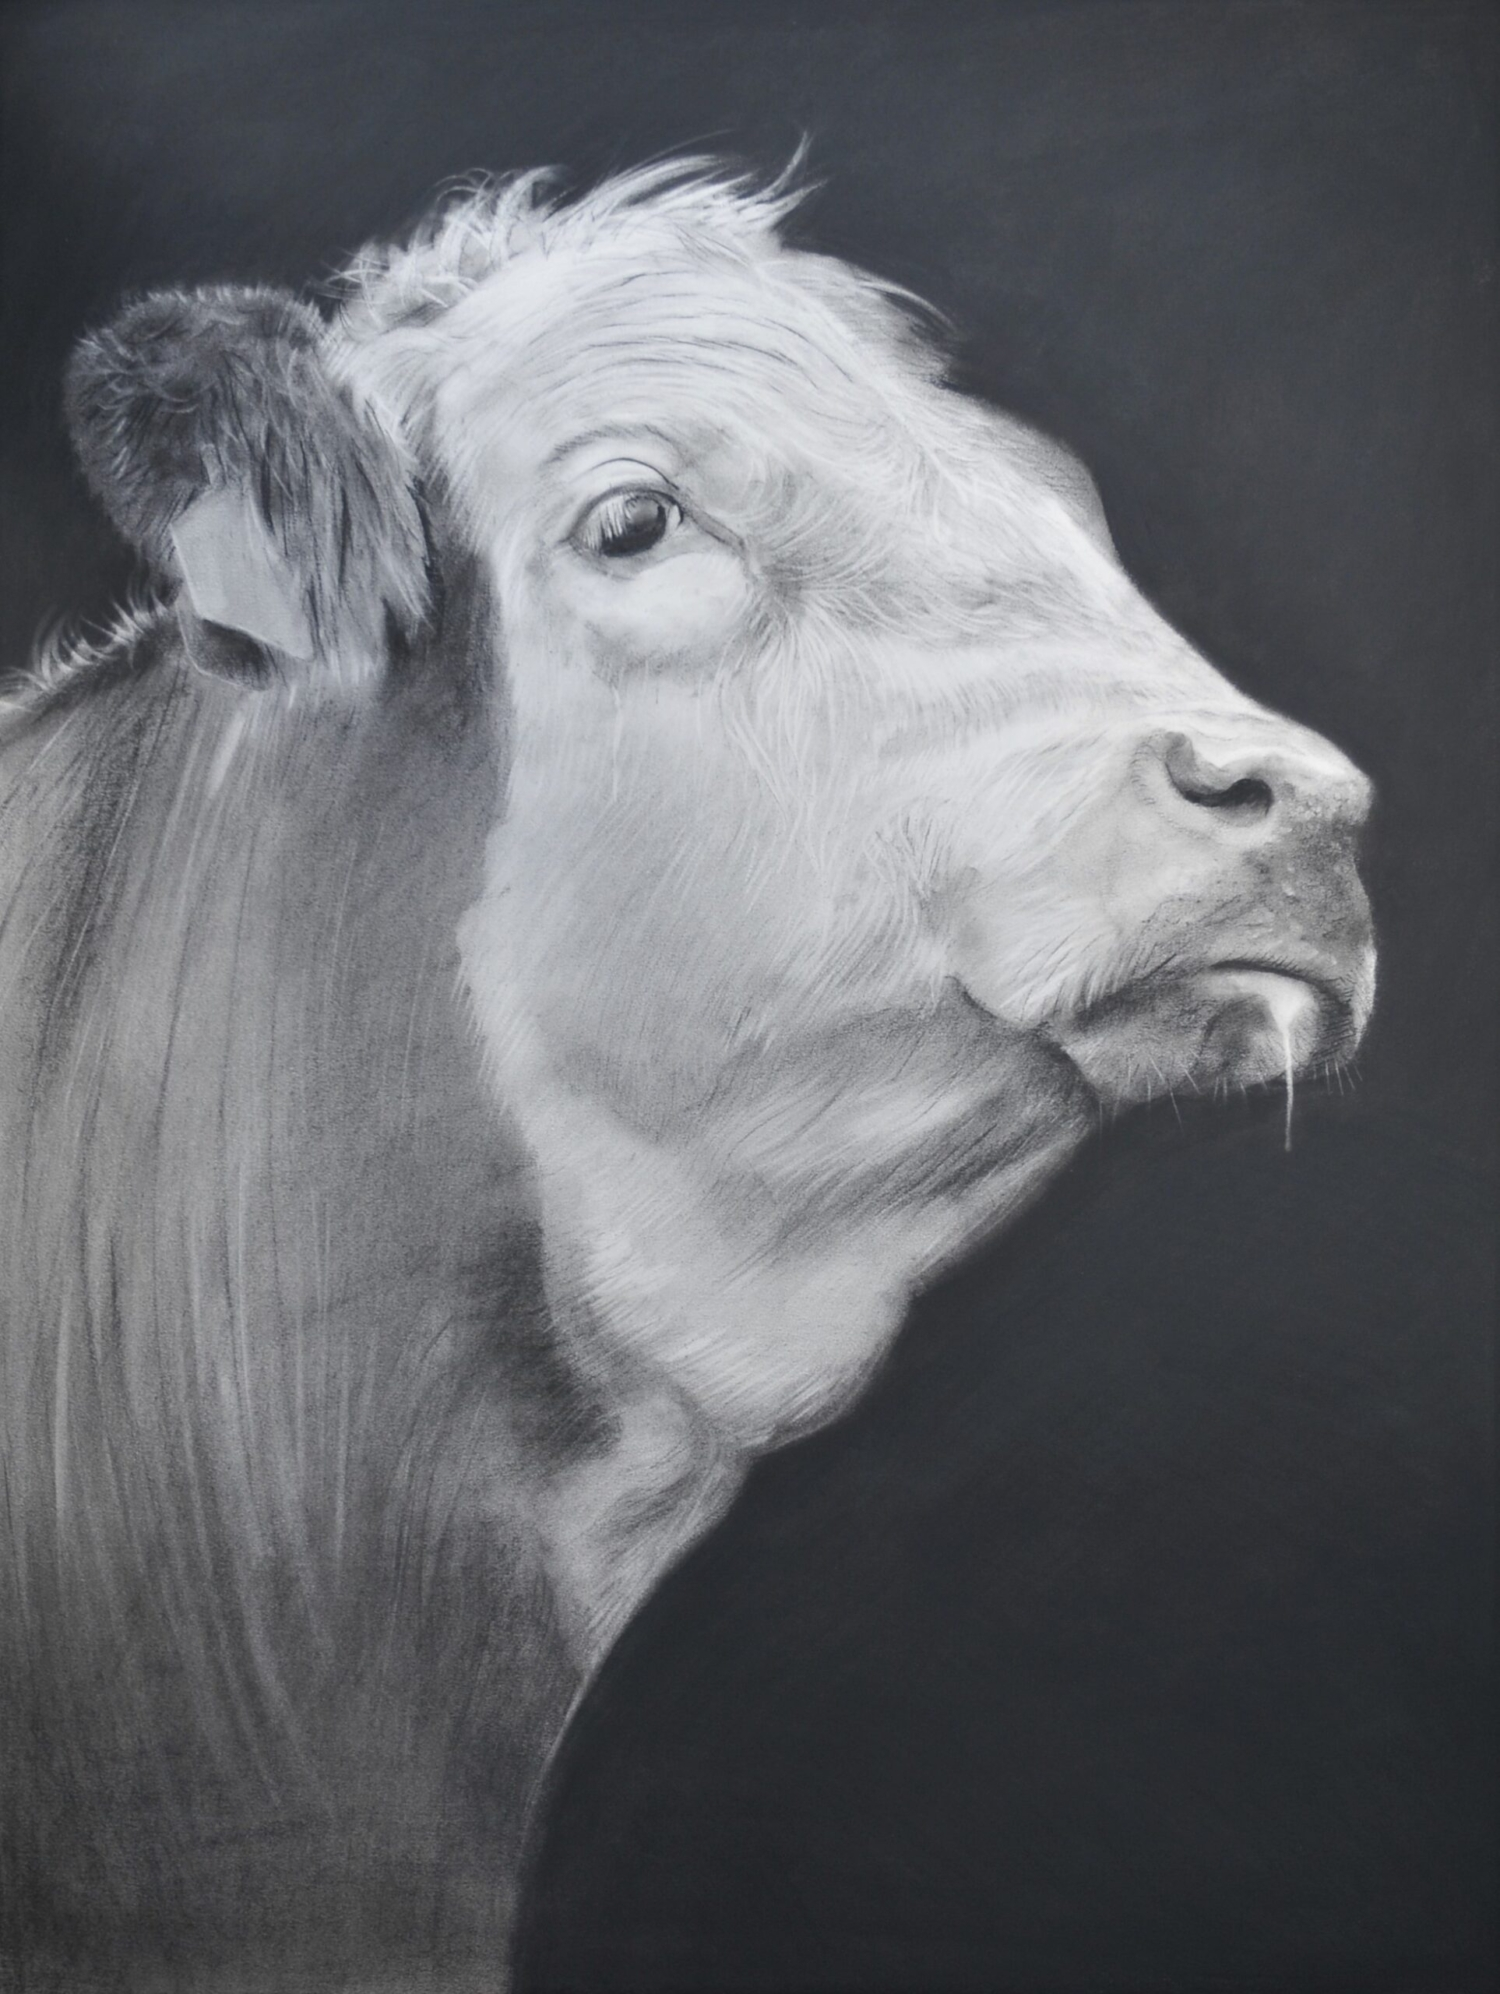 Charcoal drawing of a cow in profile